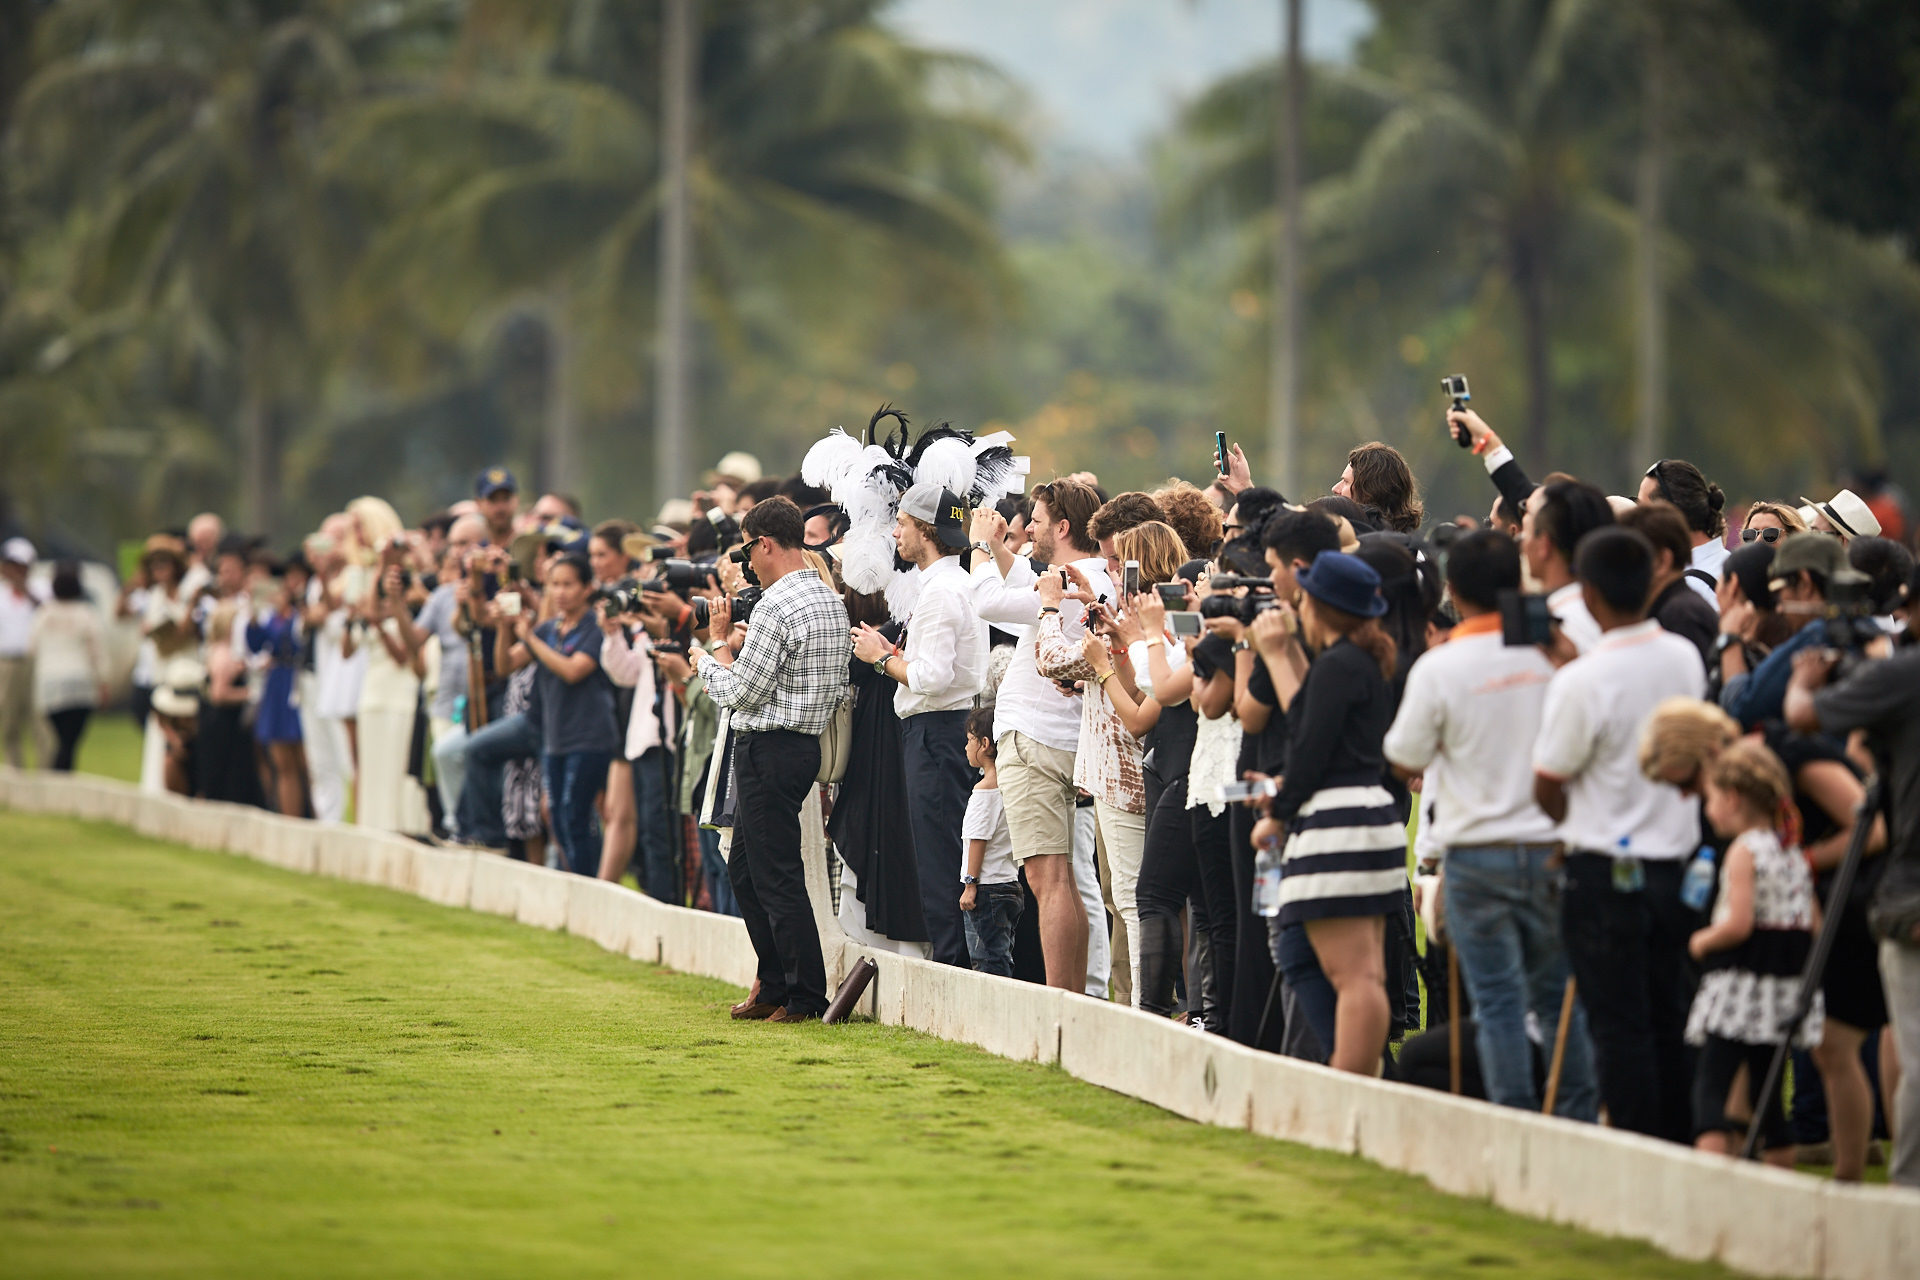 Equestrian fans and socialites turned out in large numbers to enjoy the day.